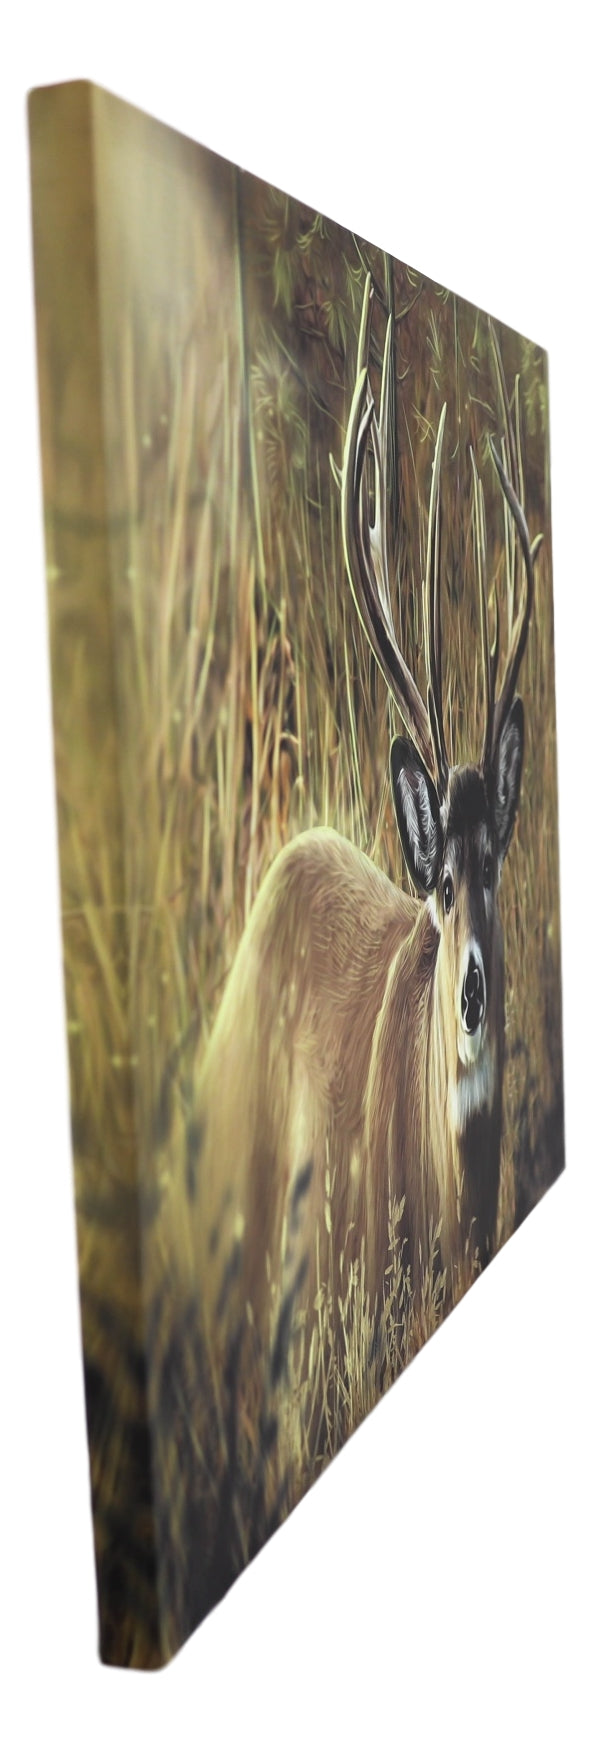 "Rustic Western Red Deer Stag Emperor Wood Framed Canvas Print 31"" X 23"" Wall Art"